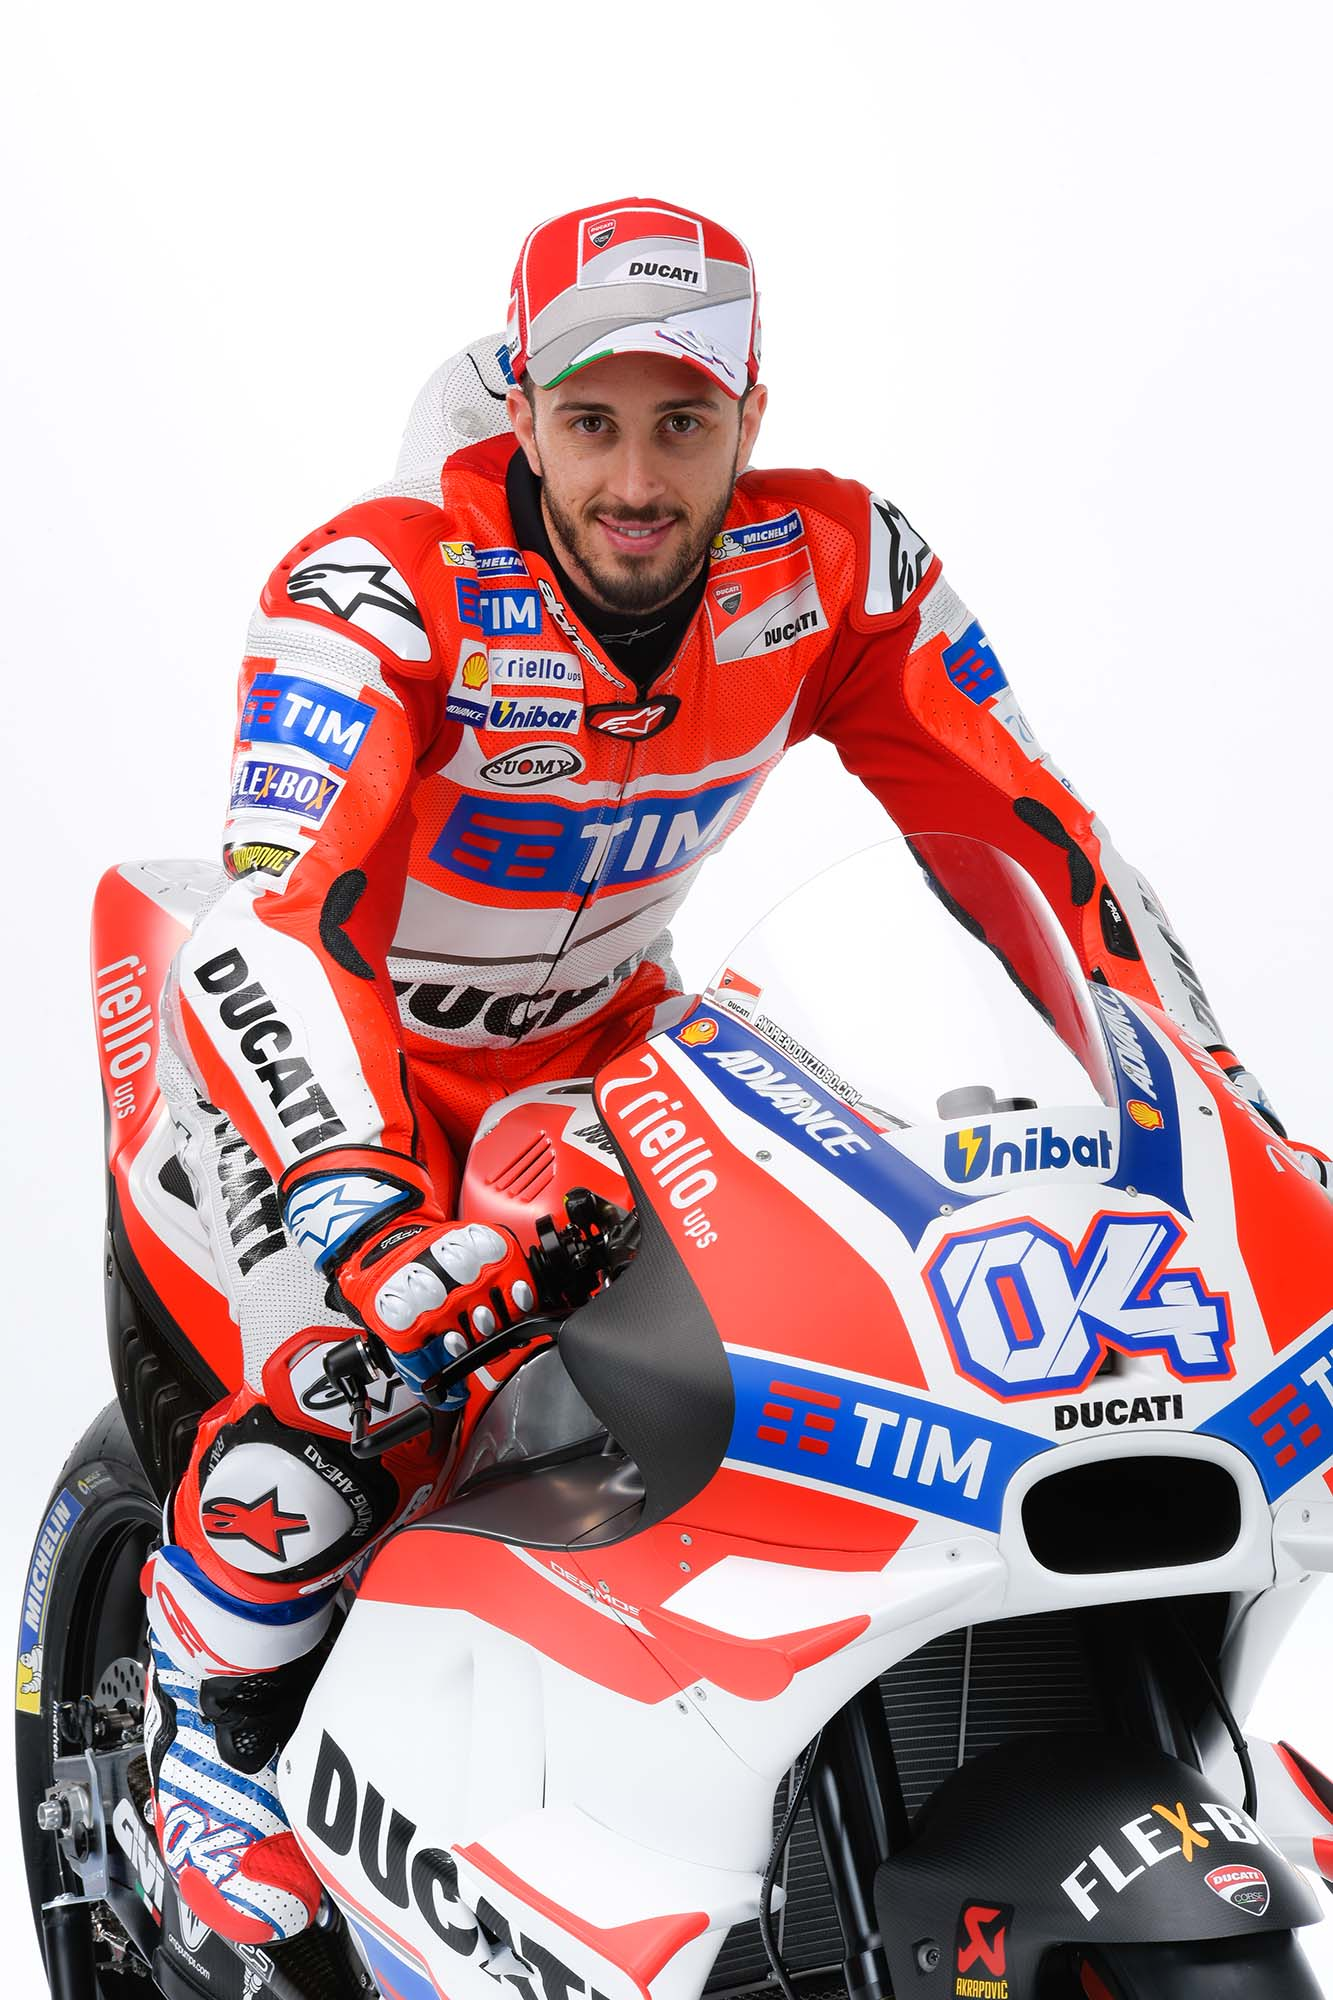 motogp andrea dovisioso remains in ducati for 2017 bikesrepublic. Black Bedroom Furniture Sets. Home Design Ideas